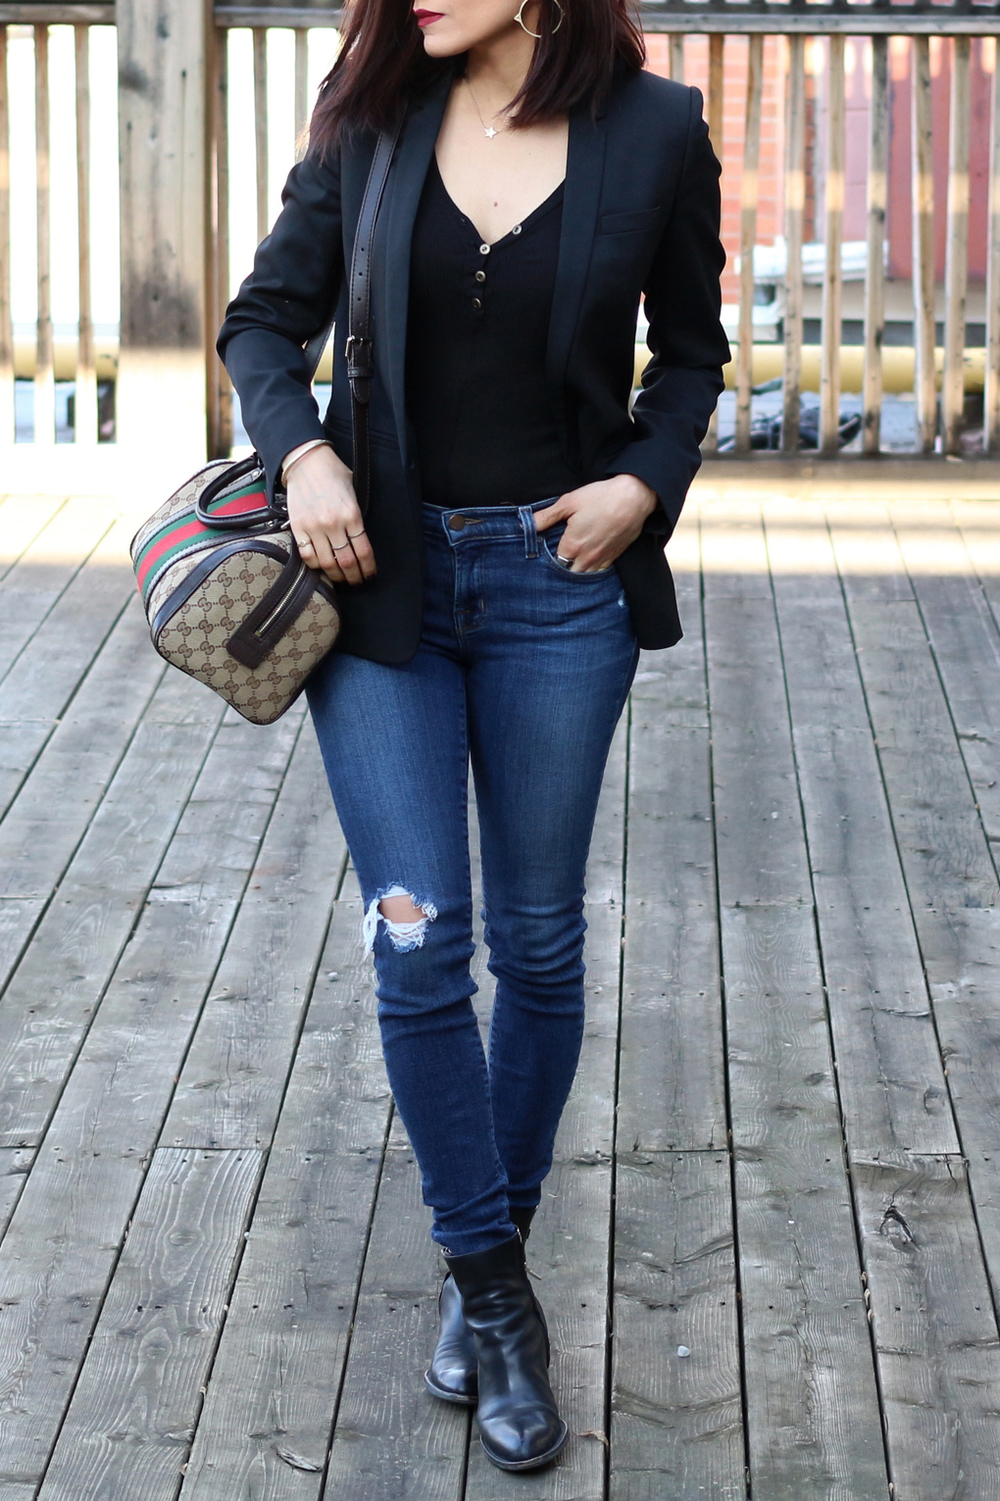 WoahStyle.com-Windsor Store body suit henley-Alexander Wang ankle boots-The Kooples blazer-Jbrand jeans-Gucci Boston bag heritage stripes-ootd-street style-toronto fashion beauty blogger_1.jpg